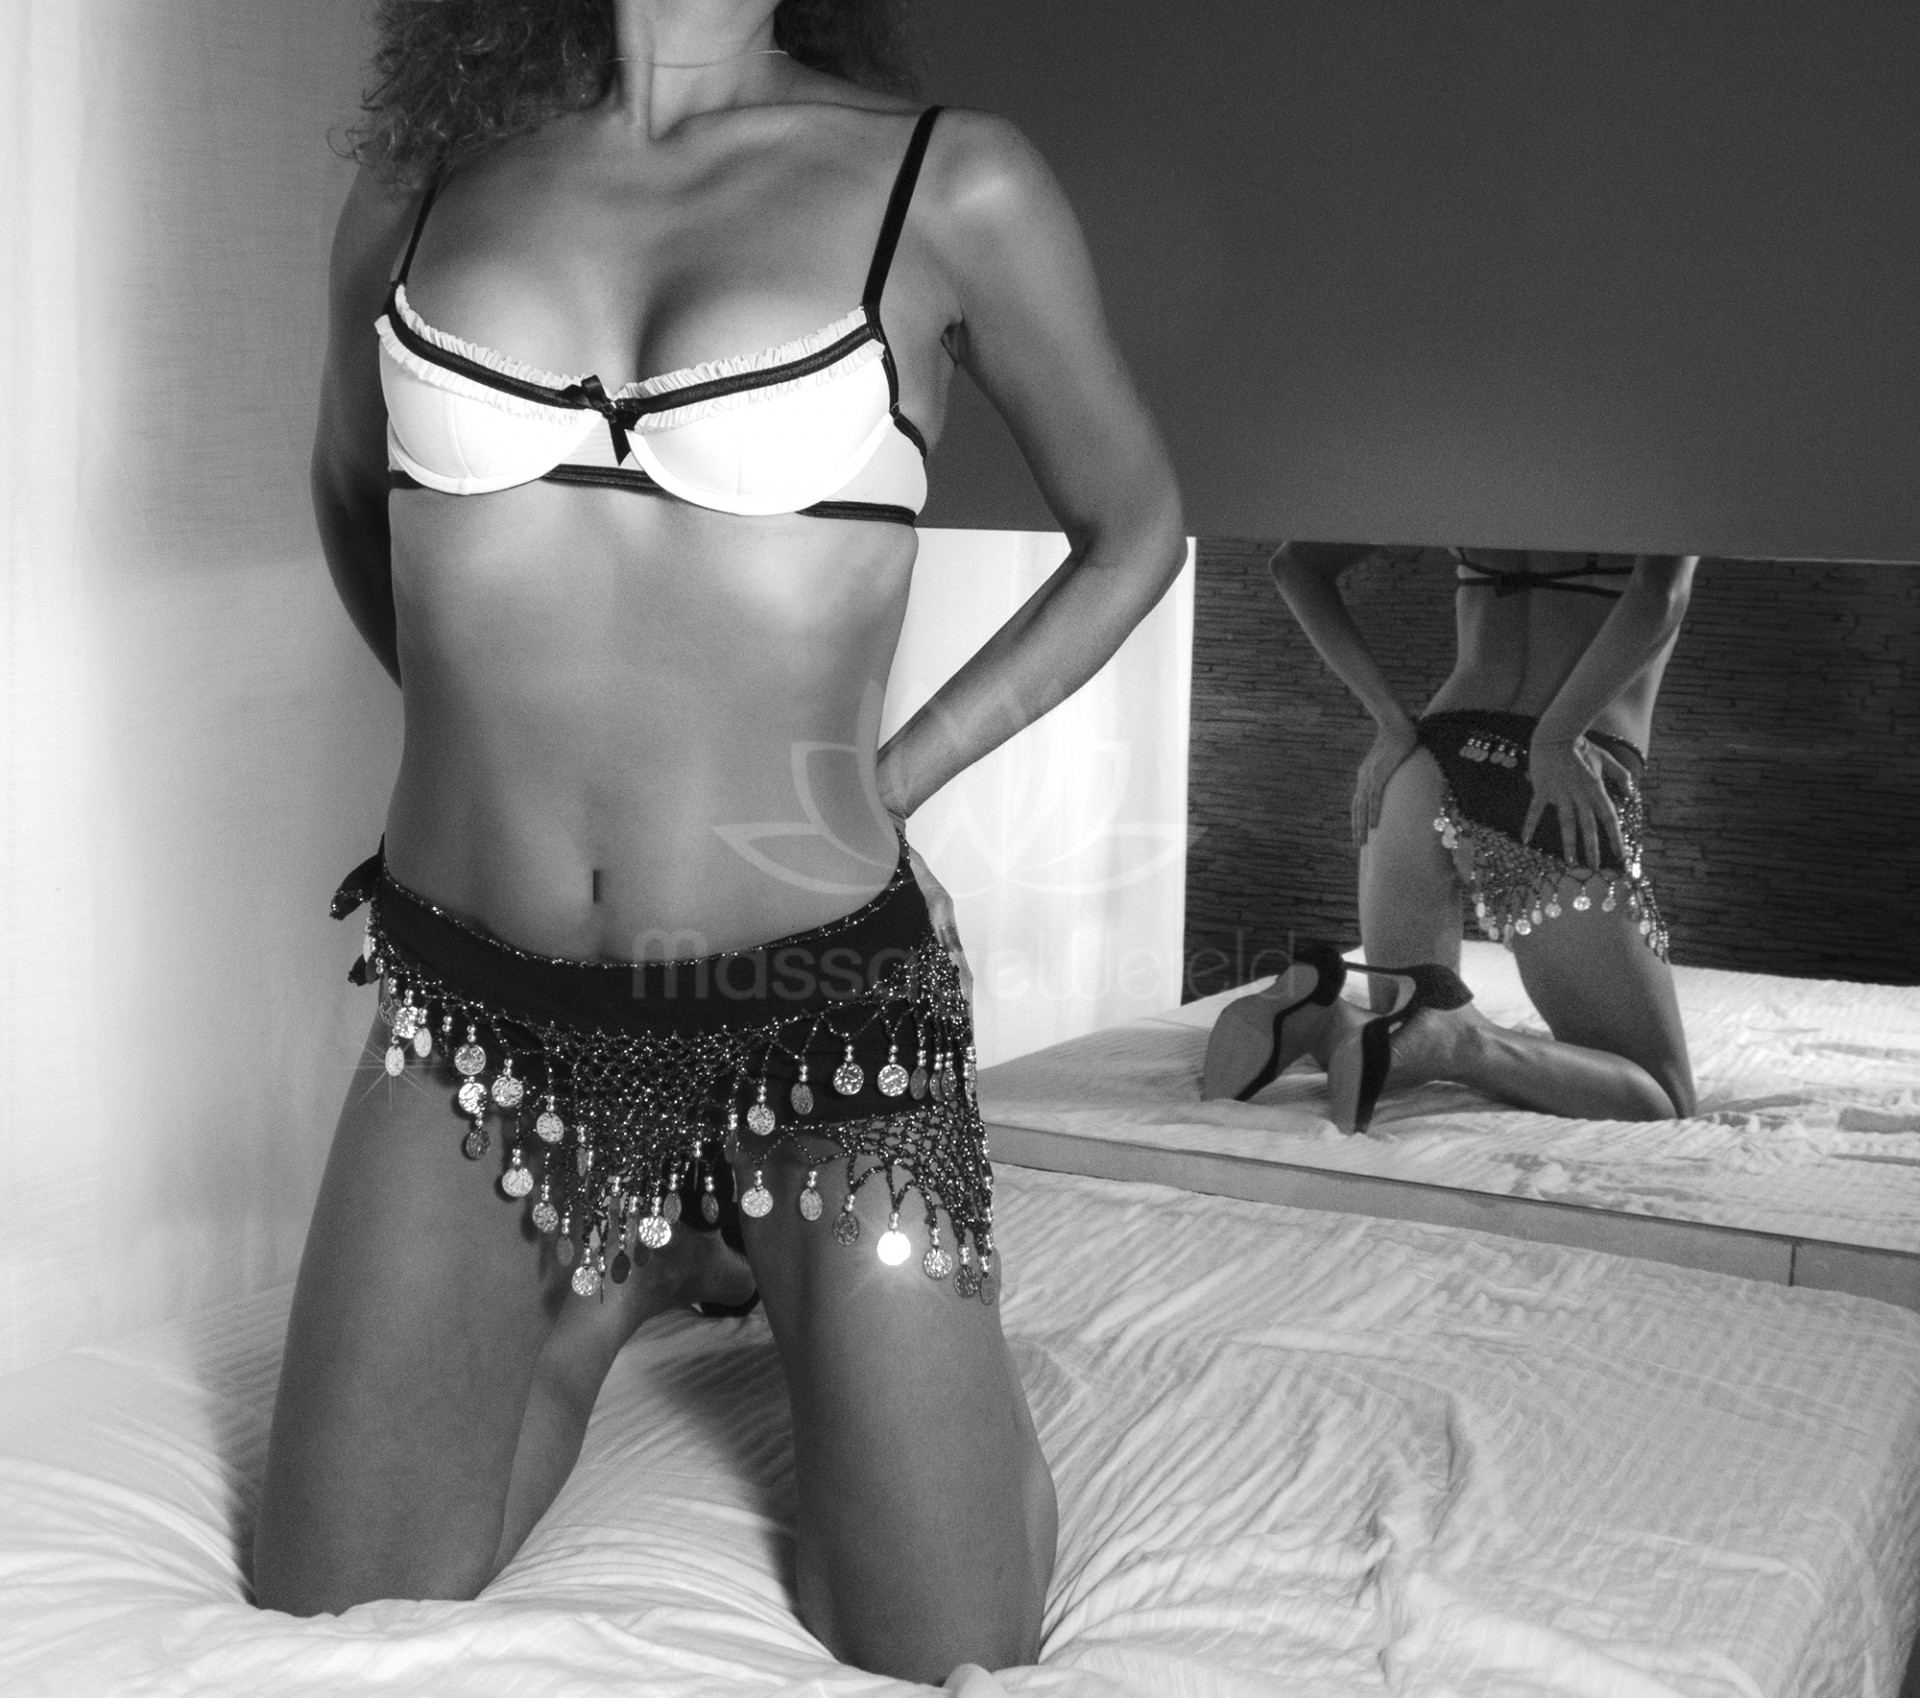 kate massage den haag 123sexfilm